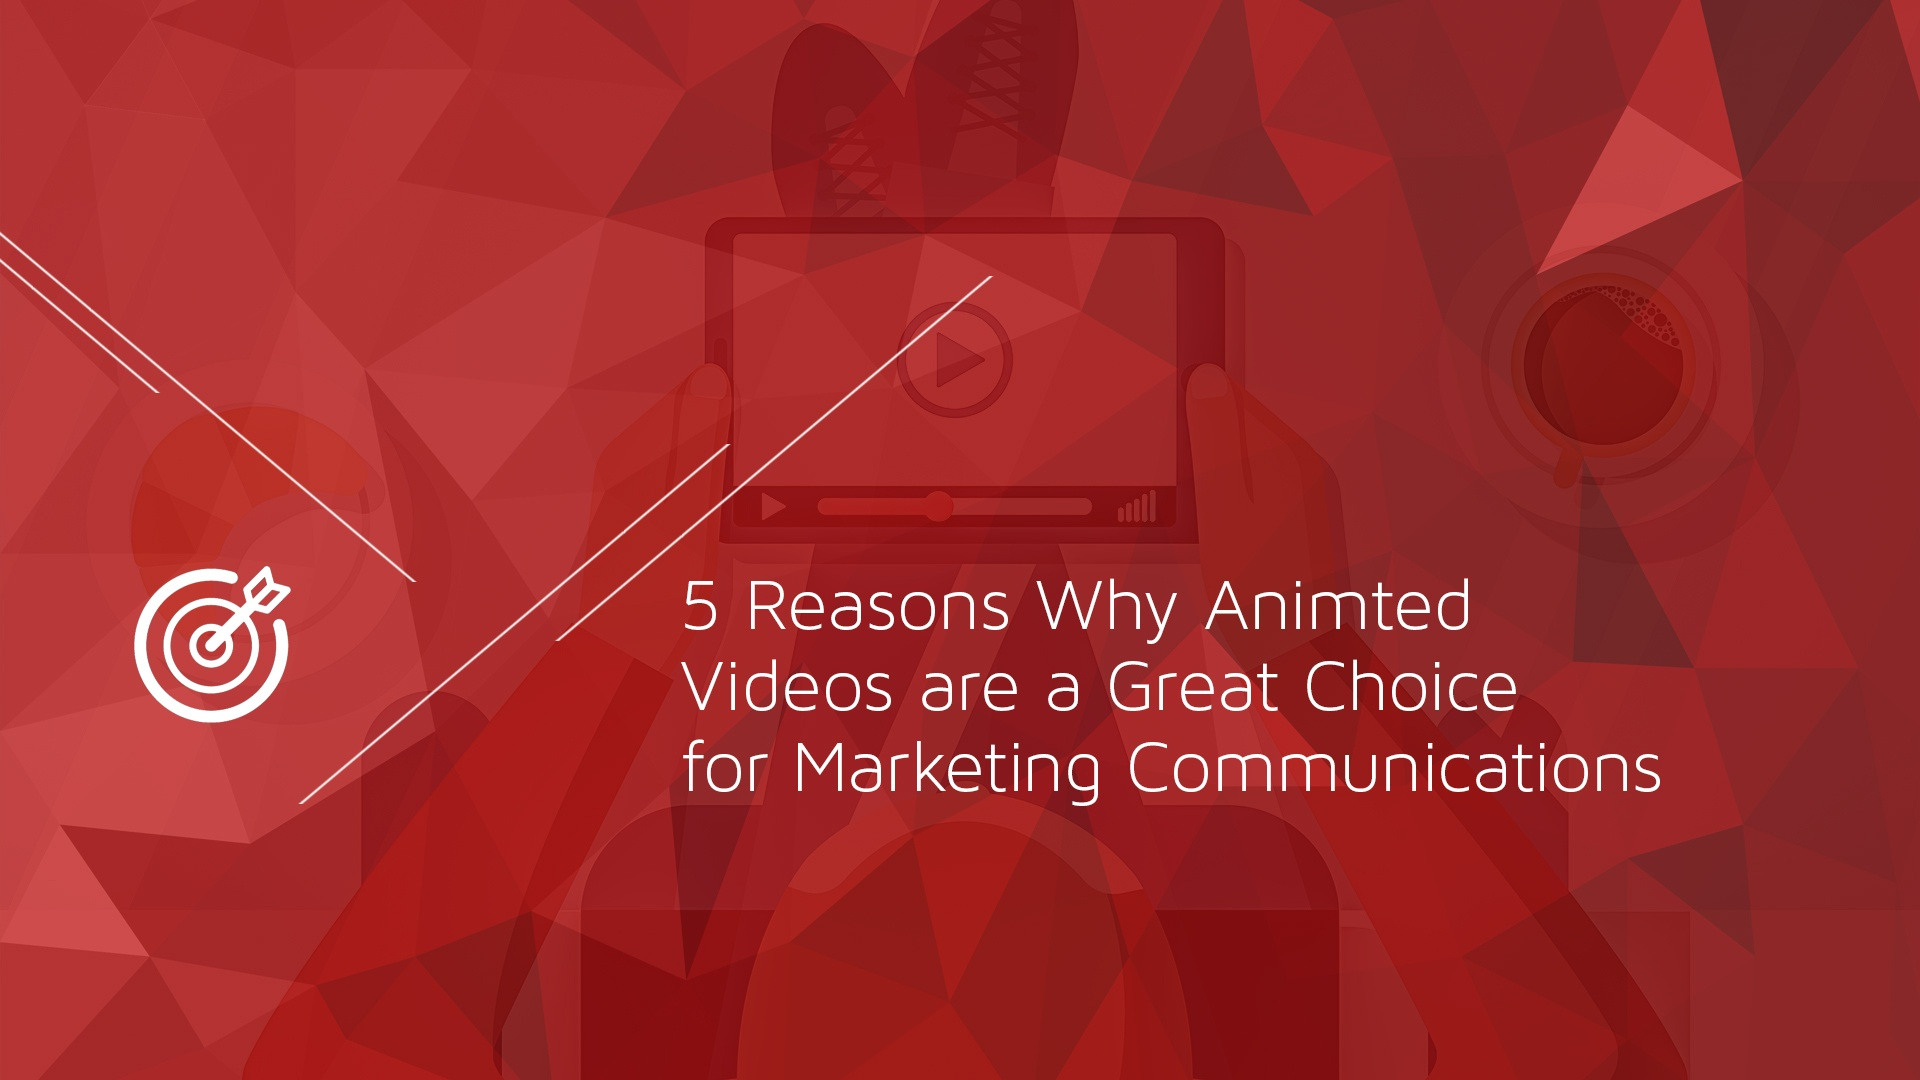 3 - 5 Reasons Why Animted Videos are a Great Choice for Marketing Communications_-1.jpg